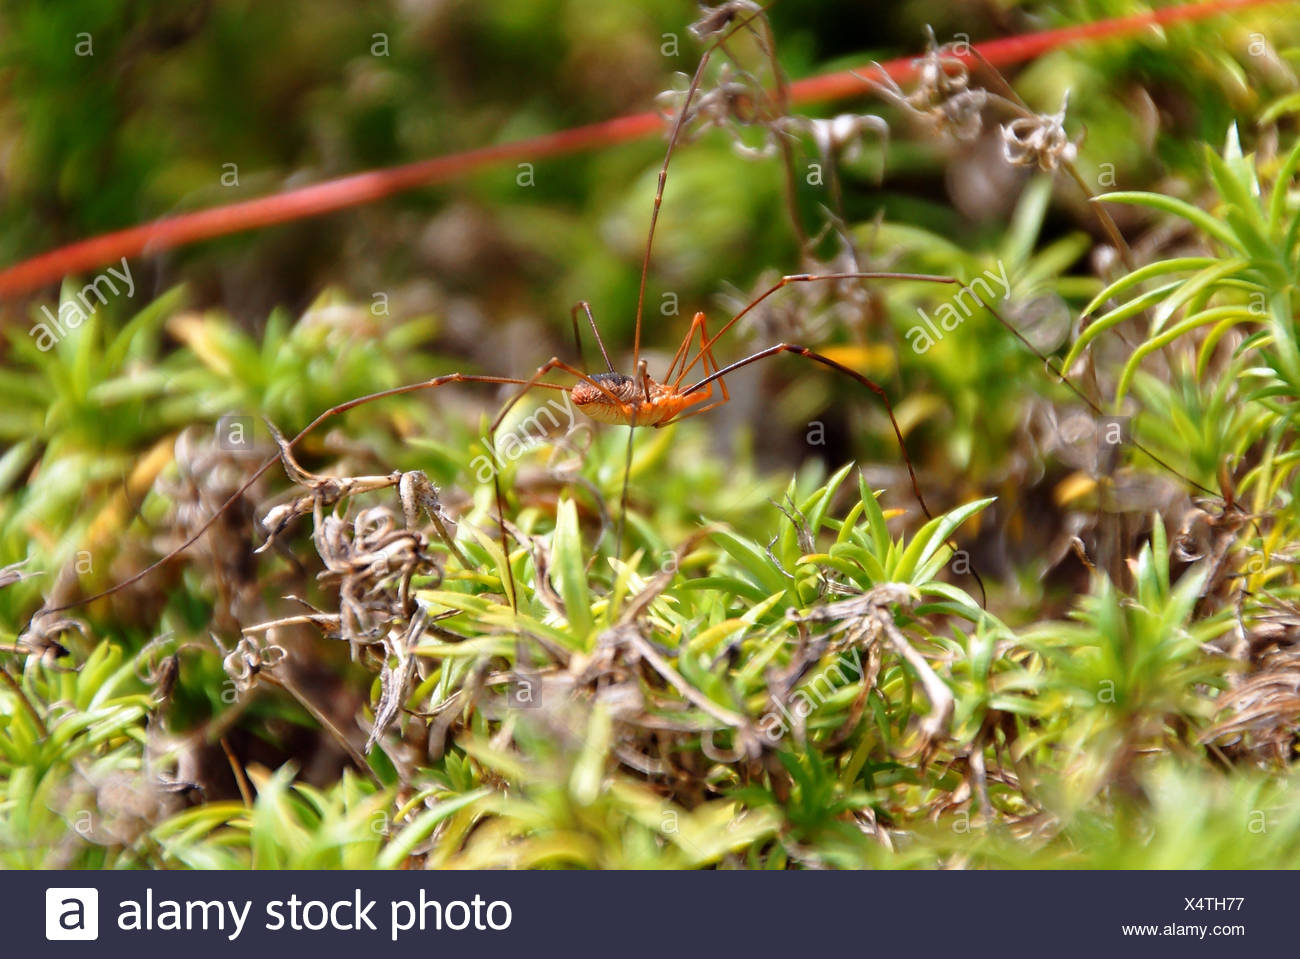 fodder, insect, spider, fly, doll, to gorge, engulf, devour, page, sheet, bee, - Stock Image